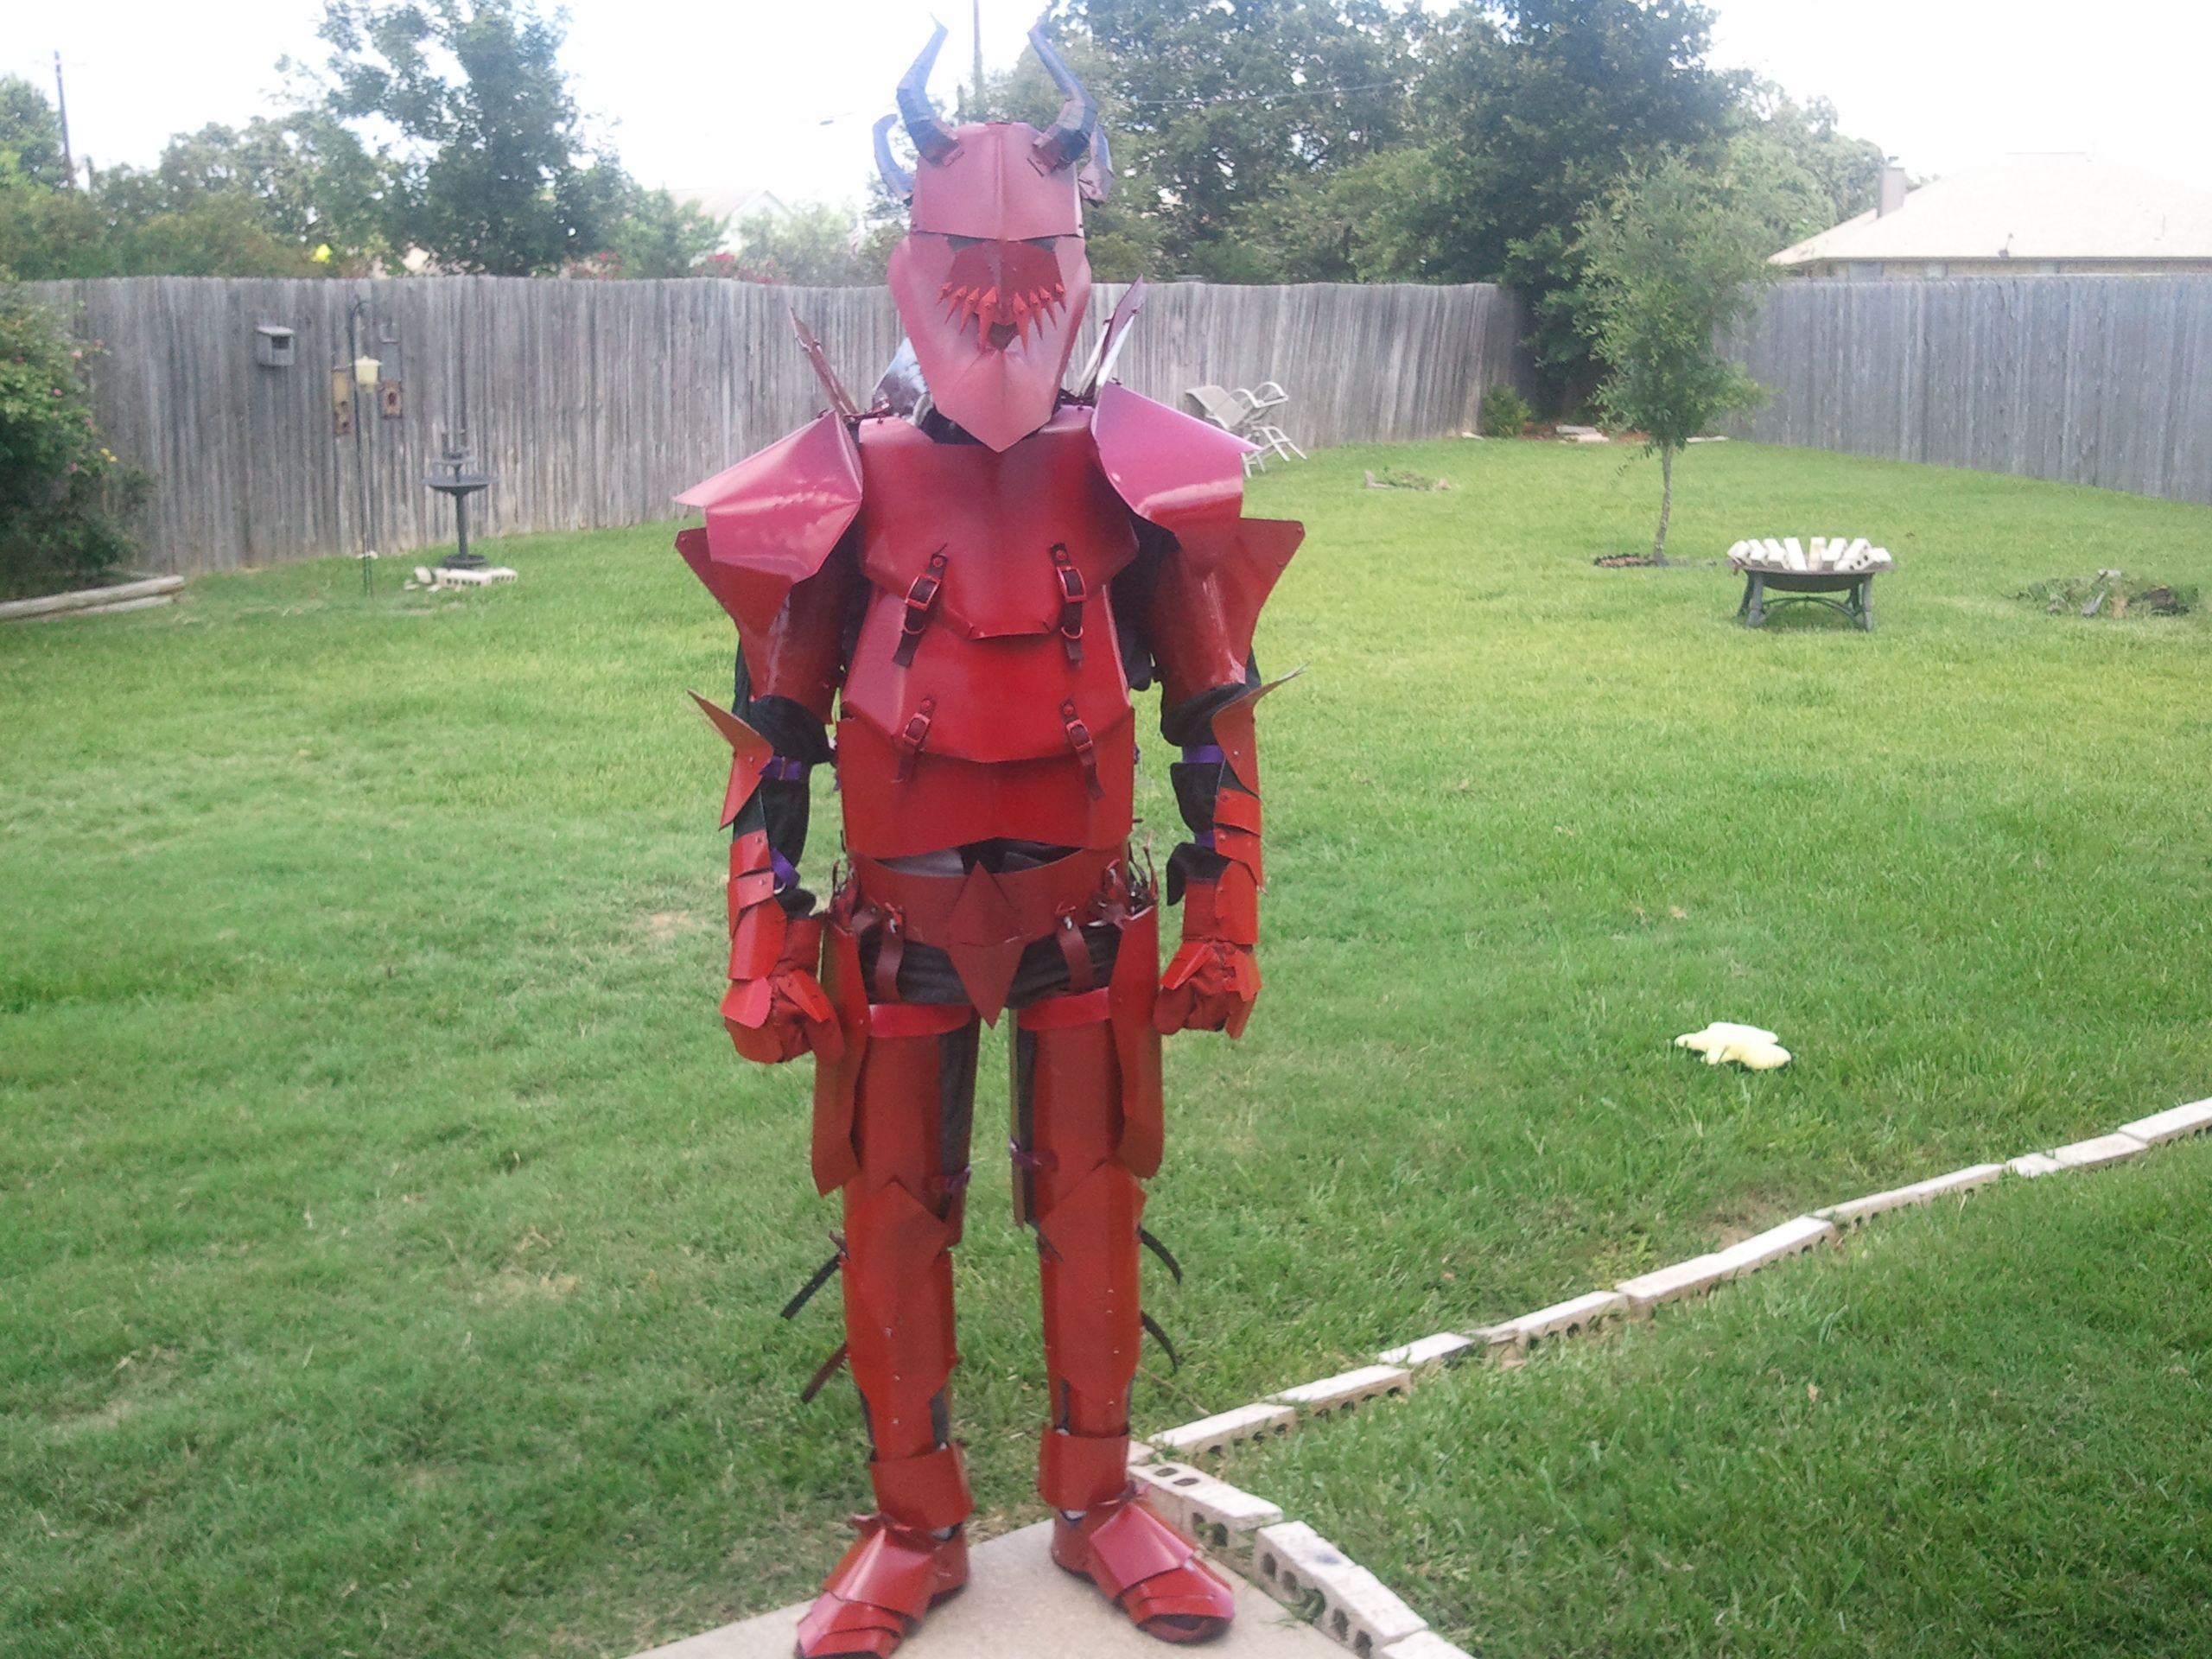 Fish in aquarium runescape - This Is My Set Of Dragon Armor From The Game Runescape It Took About Two Months To Buy The Steel And Craft It Into Armor All Parts Are Made From S